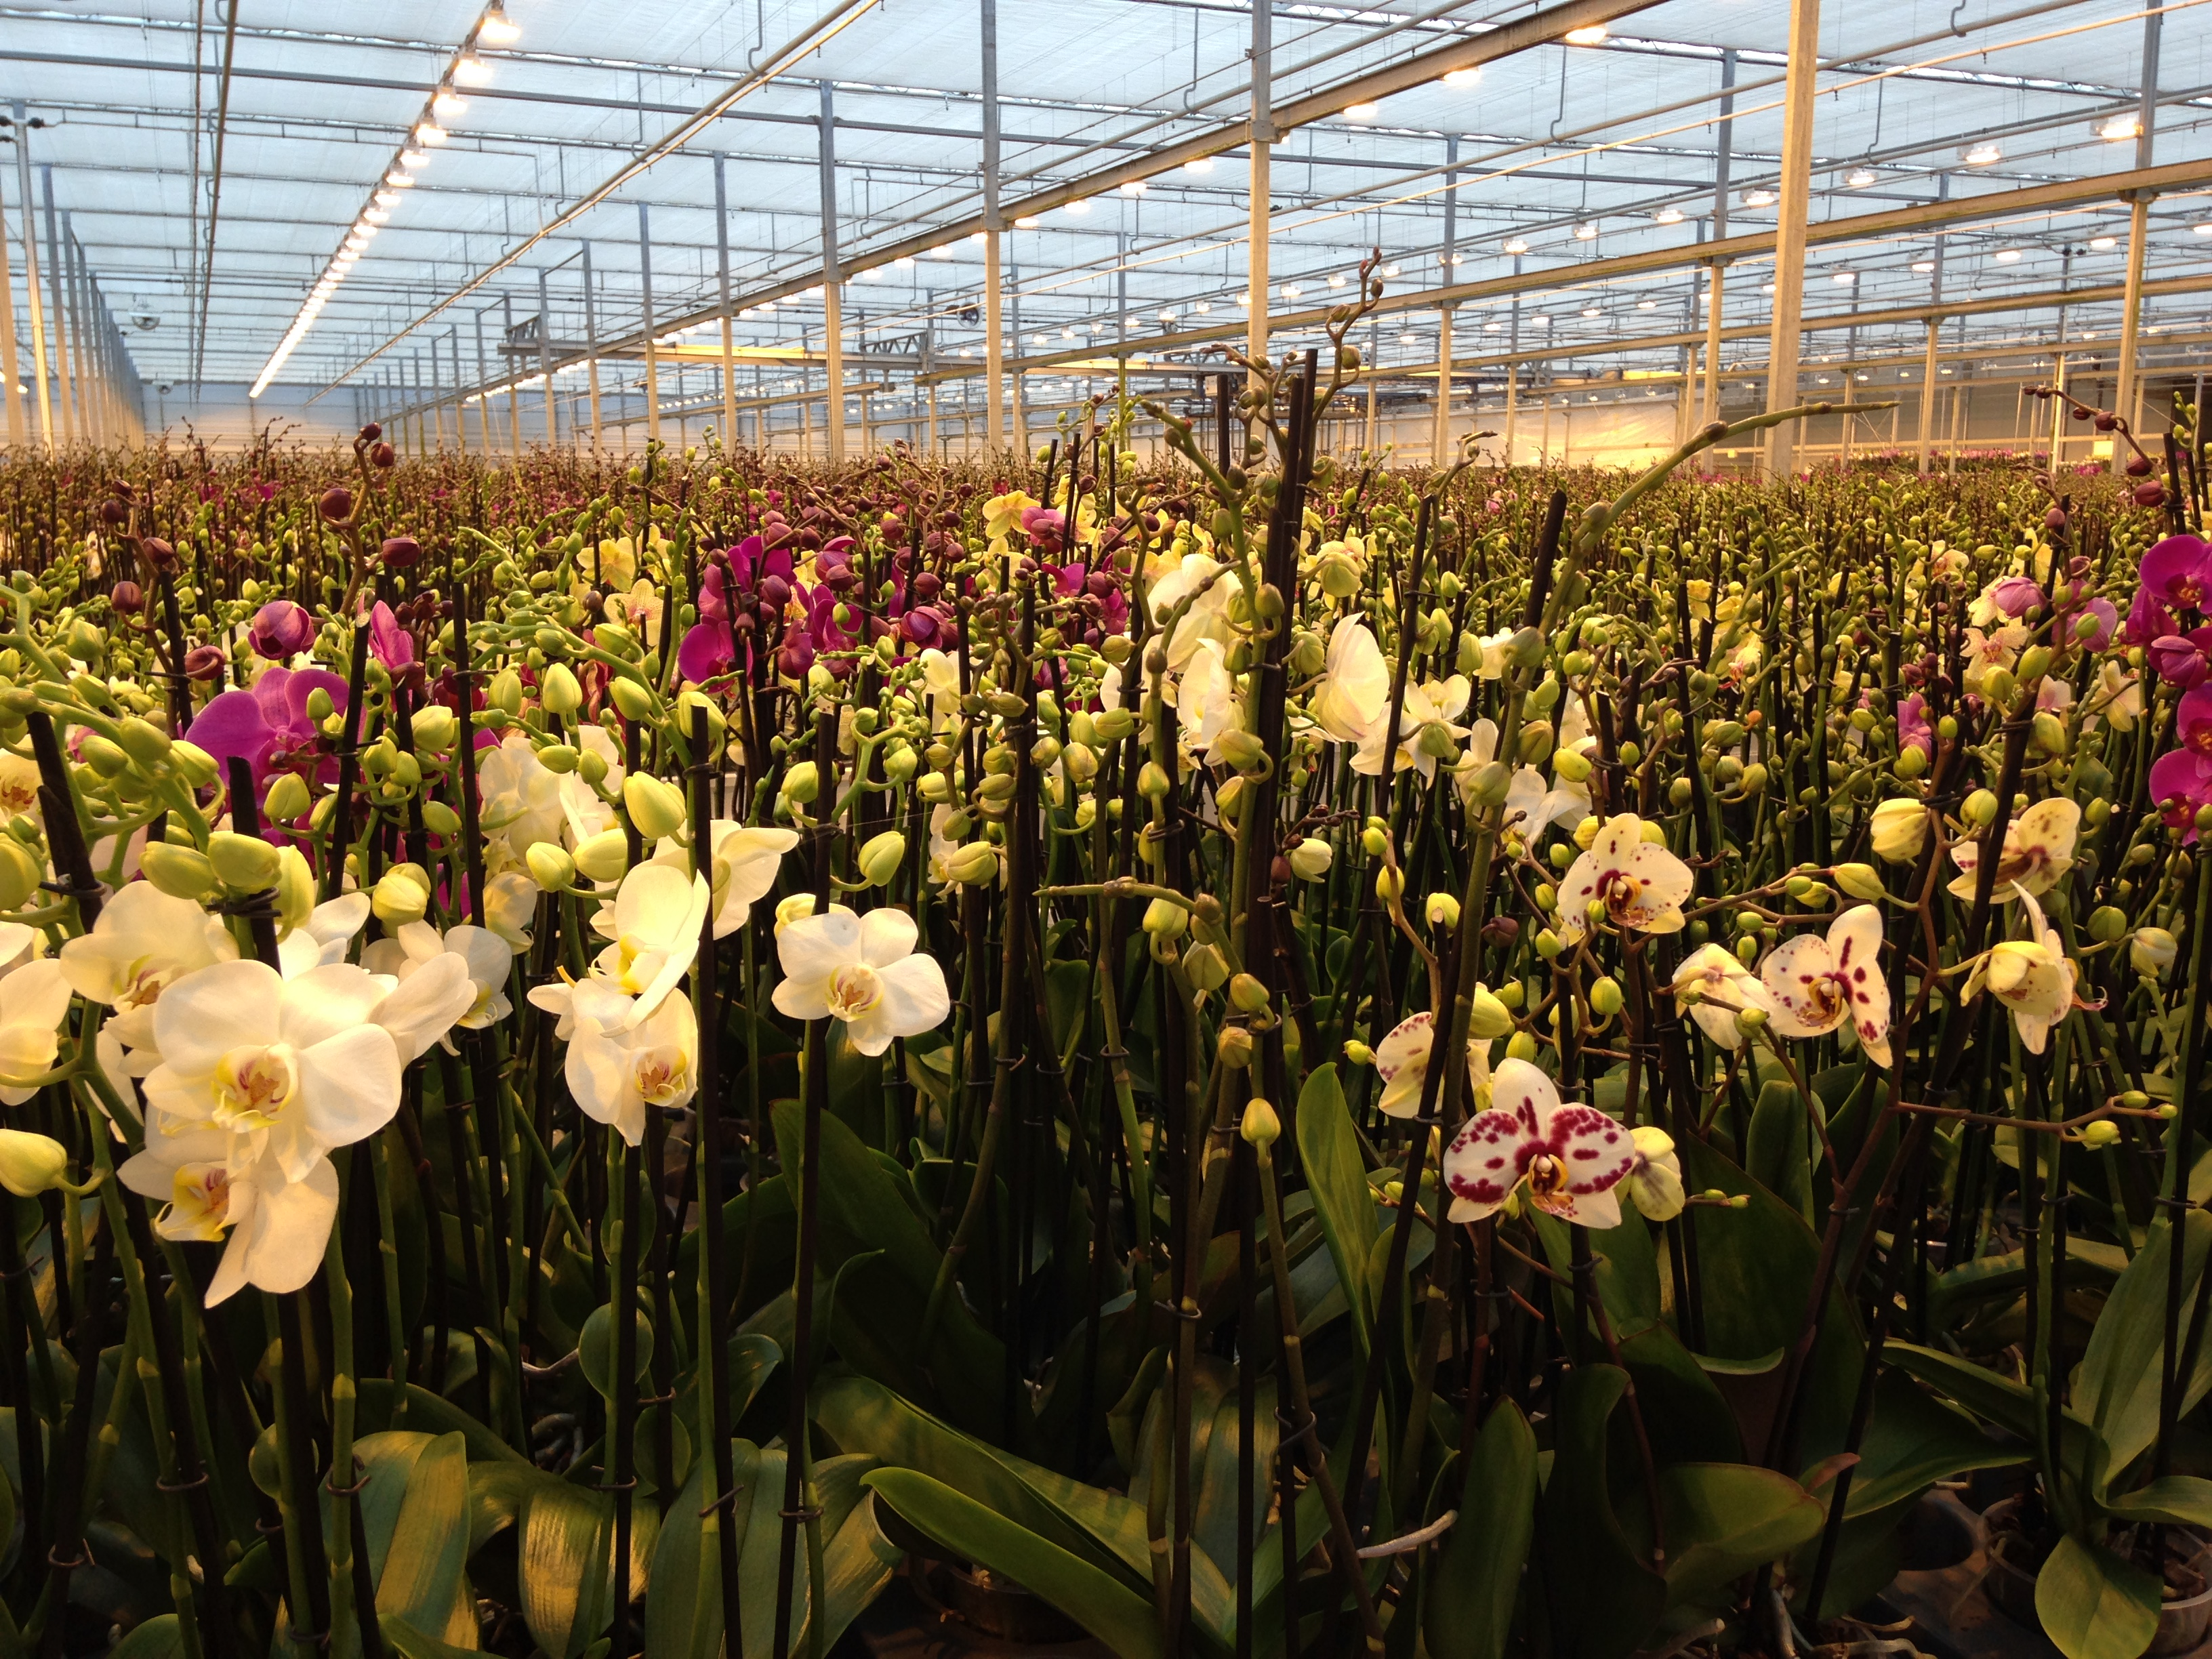 Learn about plants and quality control in the greenhouse